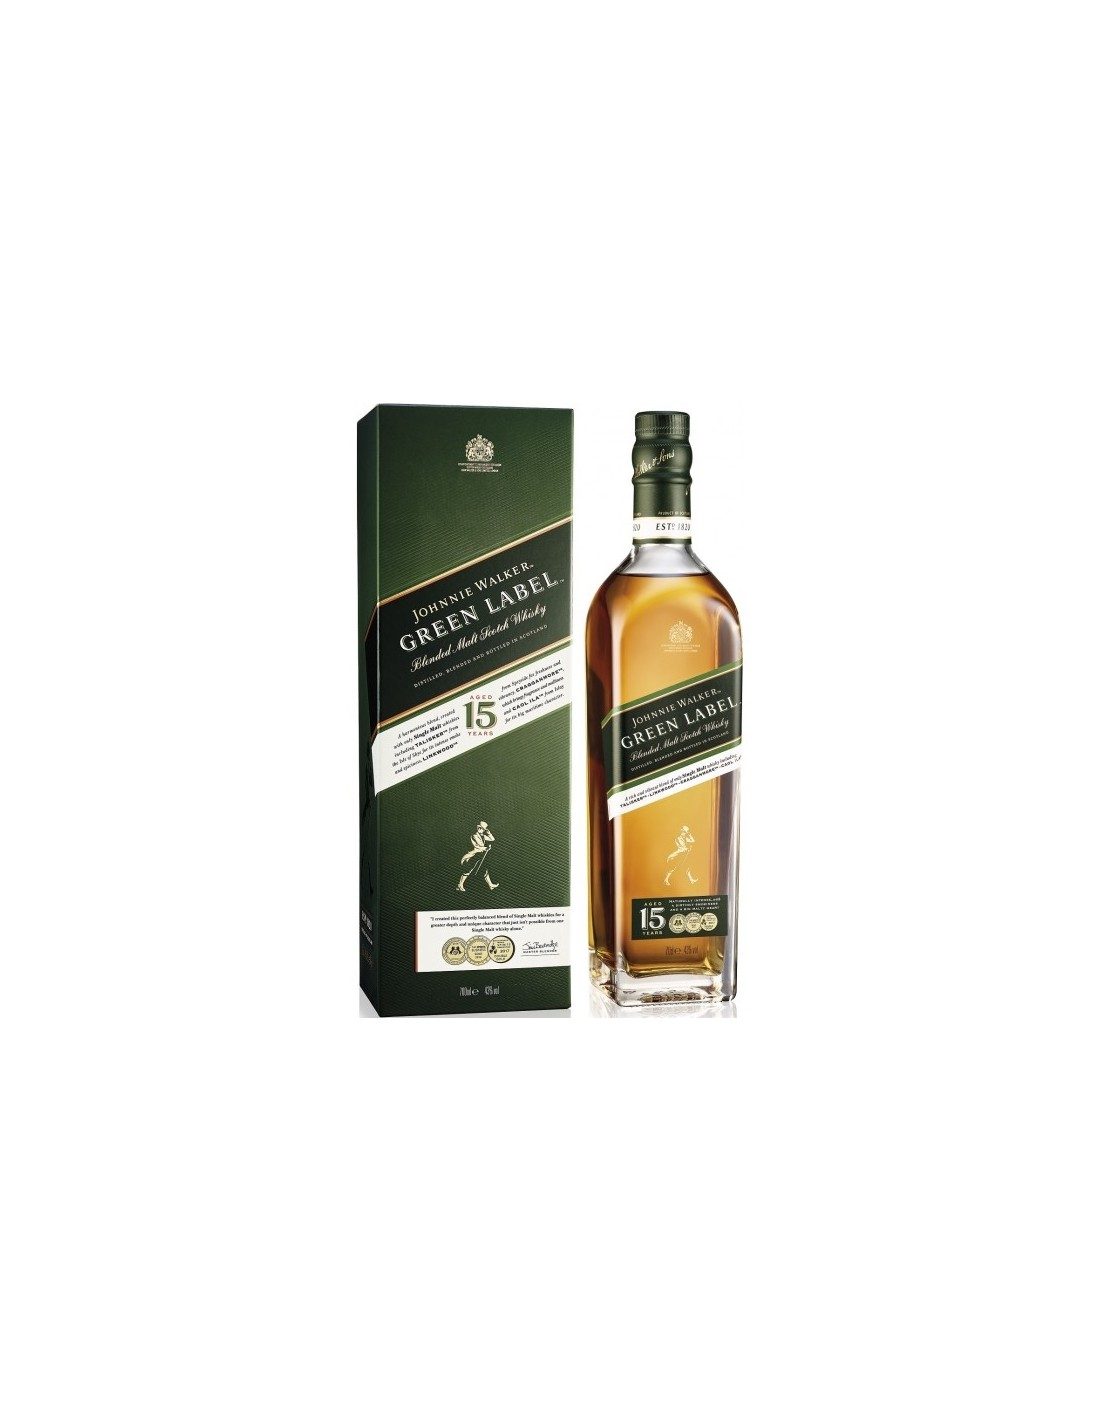 Whisky Johnnie Walker Green Label, 15 ani, 43% alc., 0.7L, Scotia